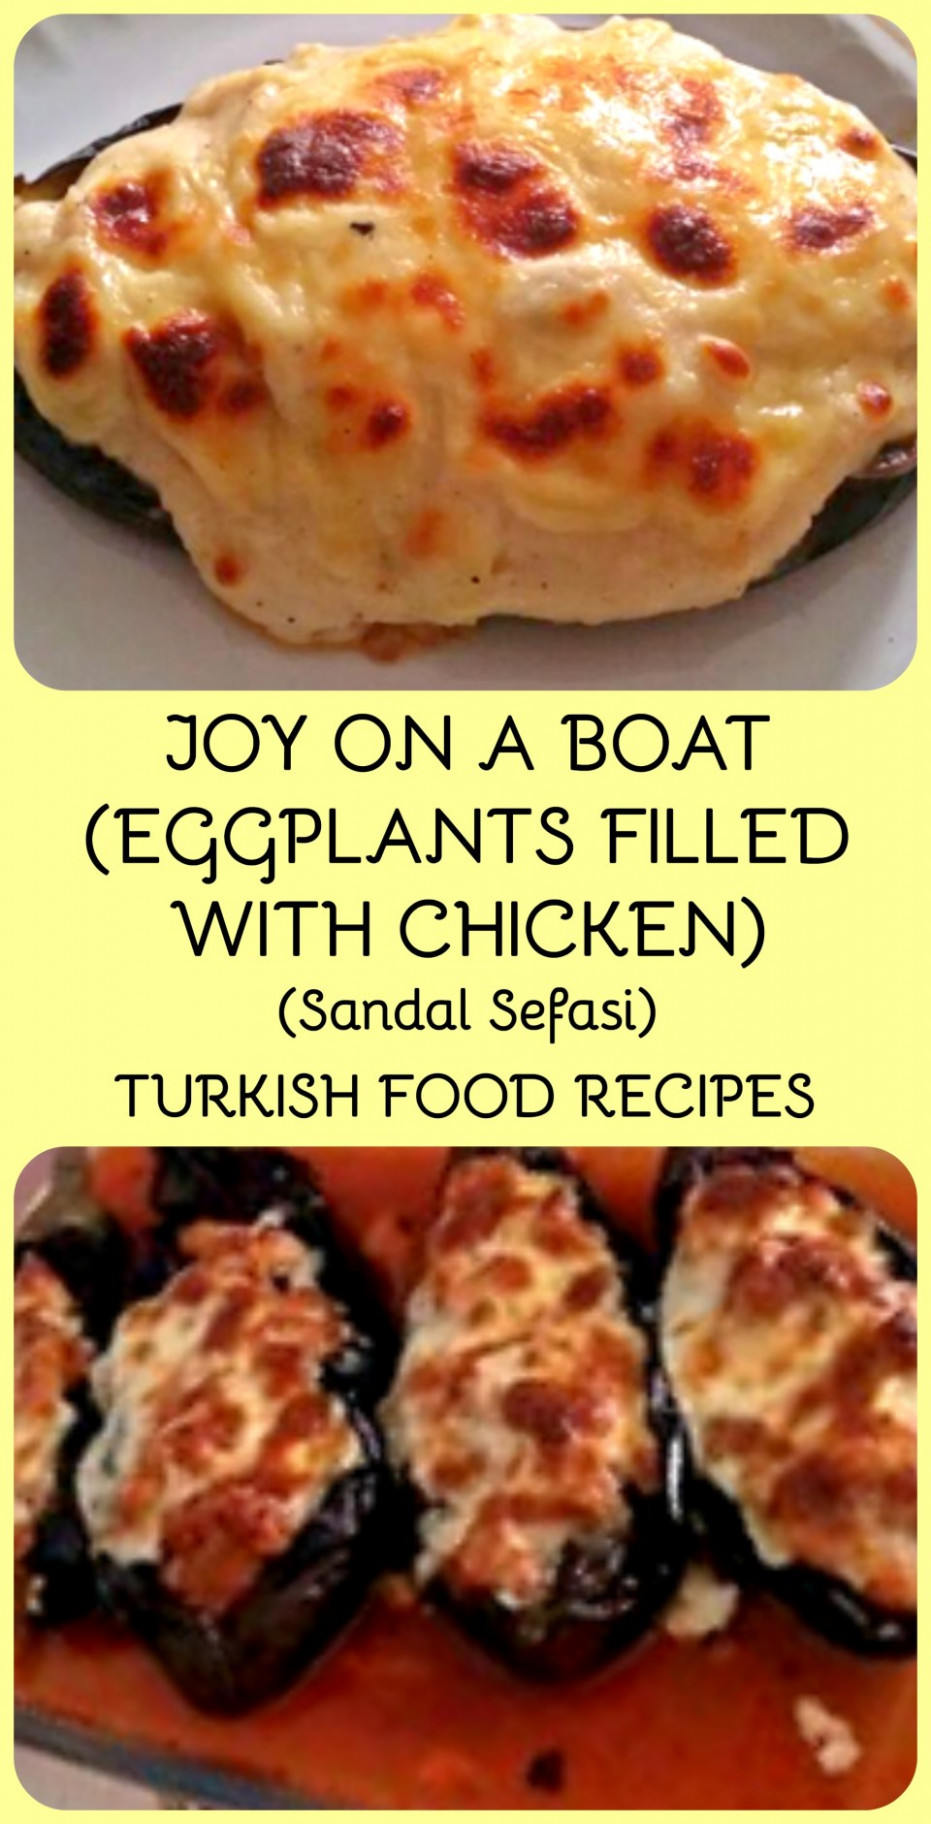 JOY ON A BOAT (EGGPLANTS FILLED WITH CHICKEN) - SANDAL ..